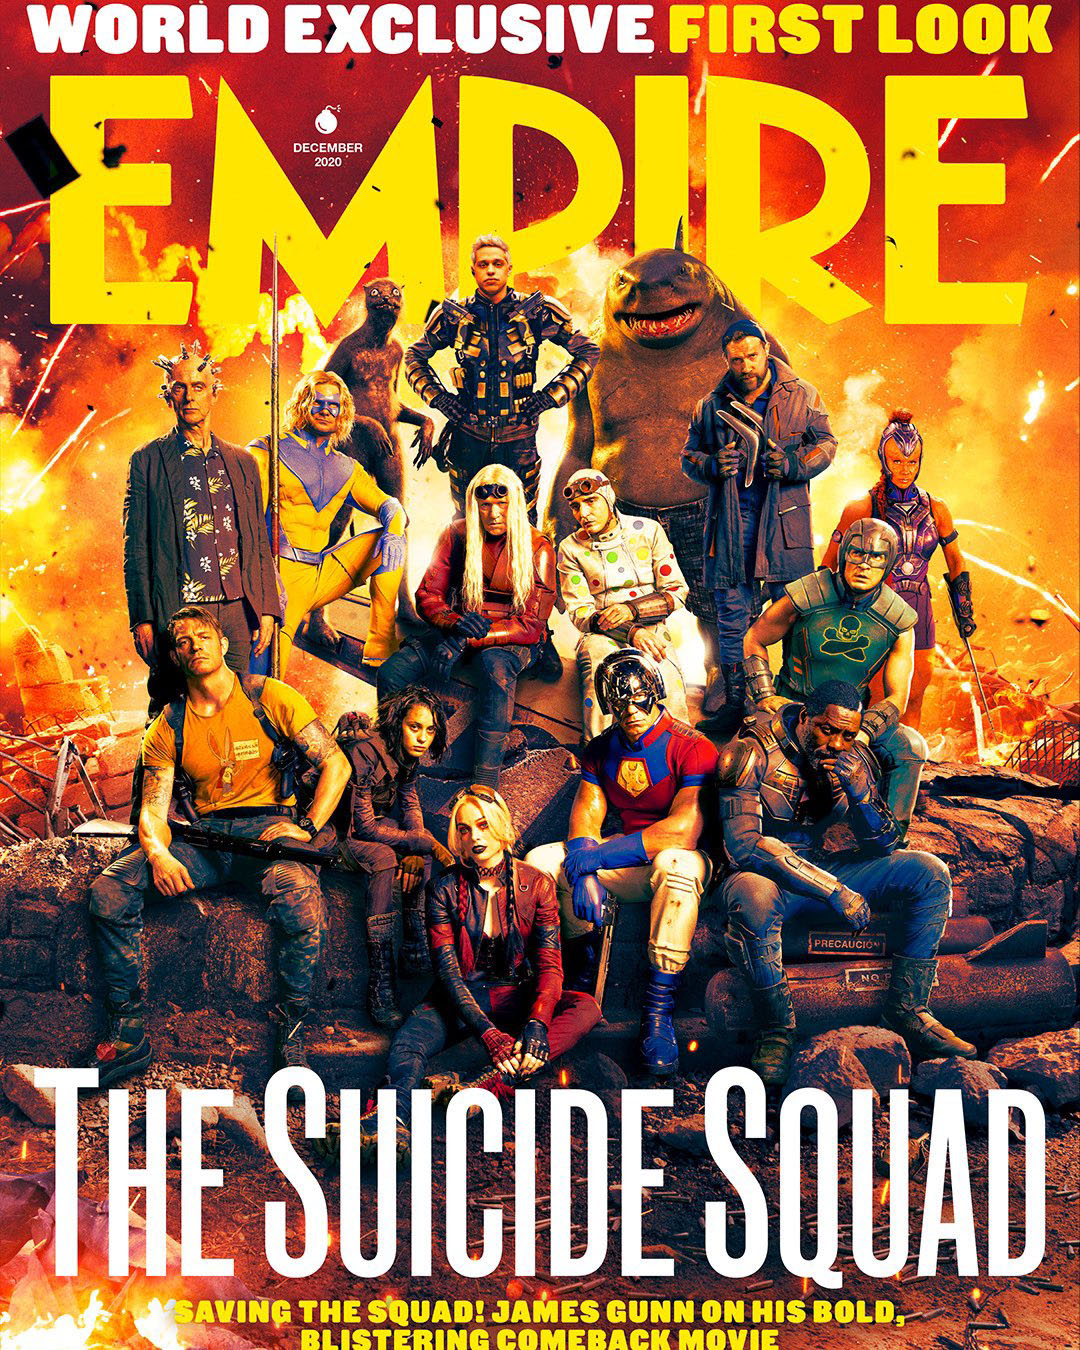 Empire shares two new covers for The Suicide Squad | Batman News